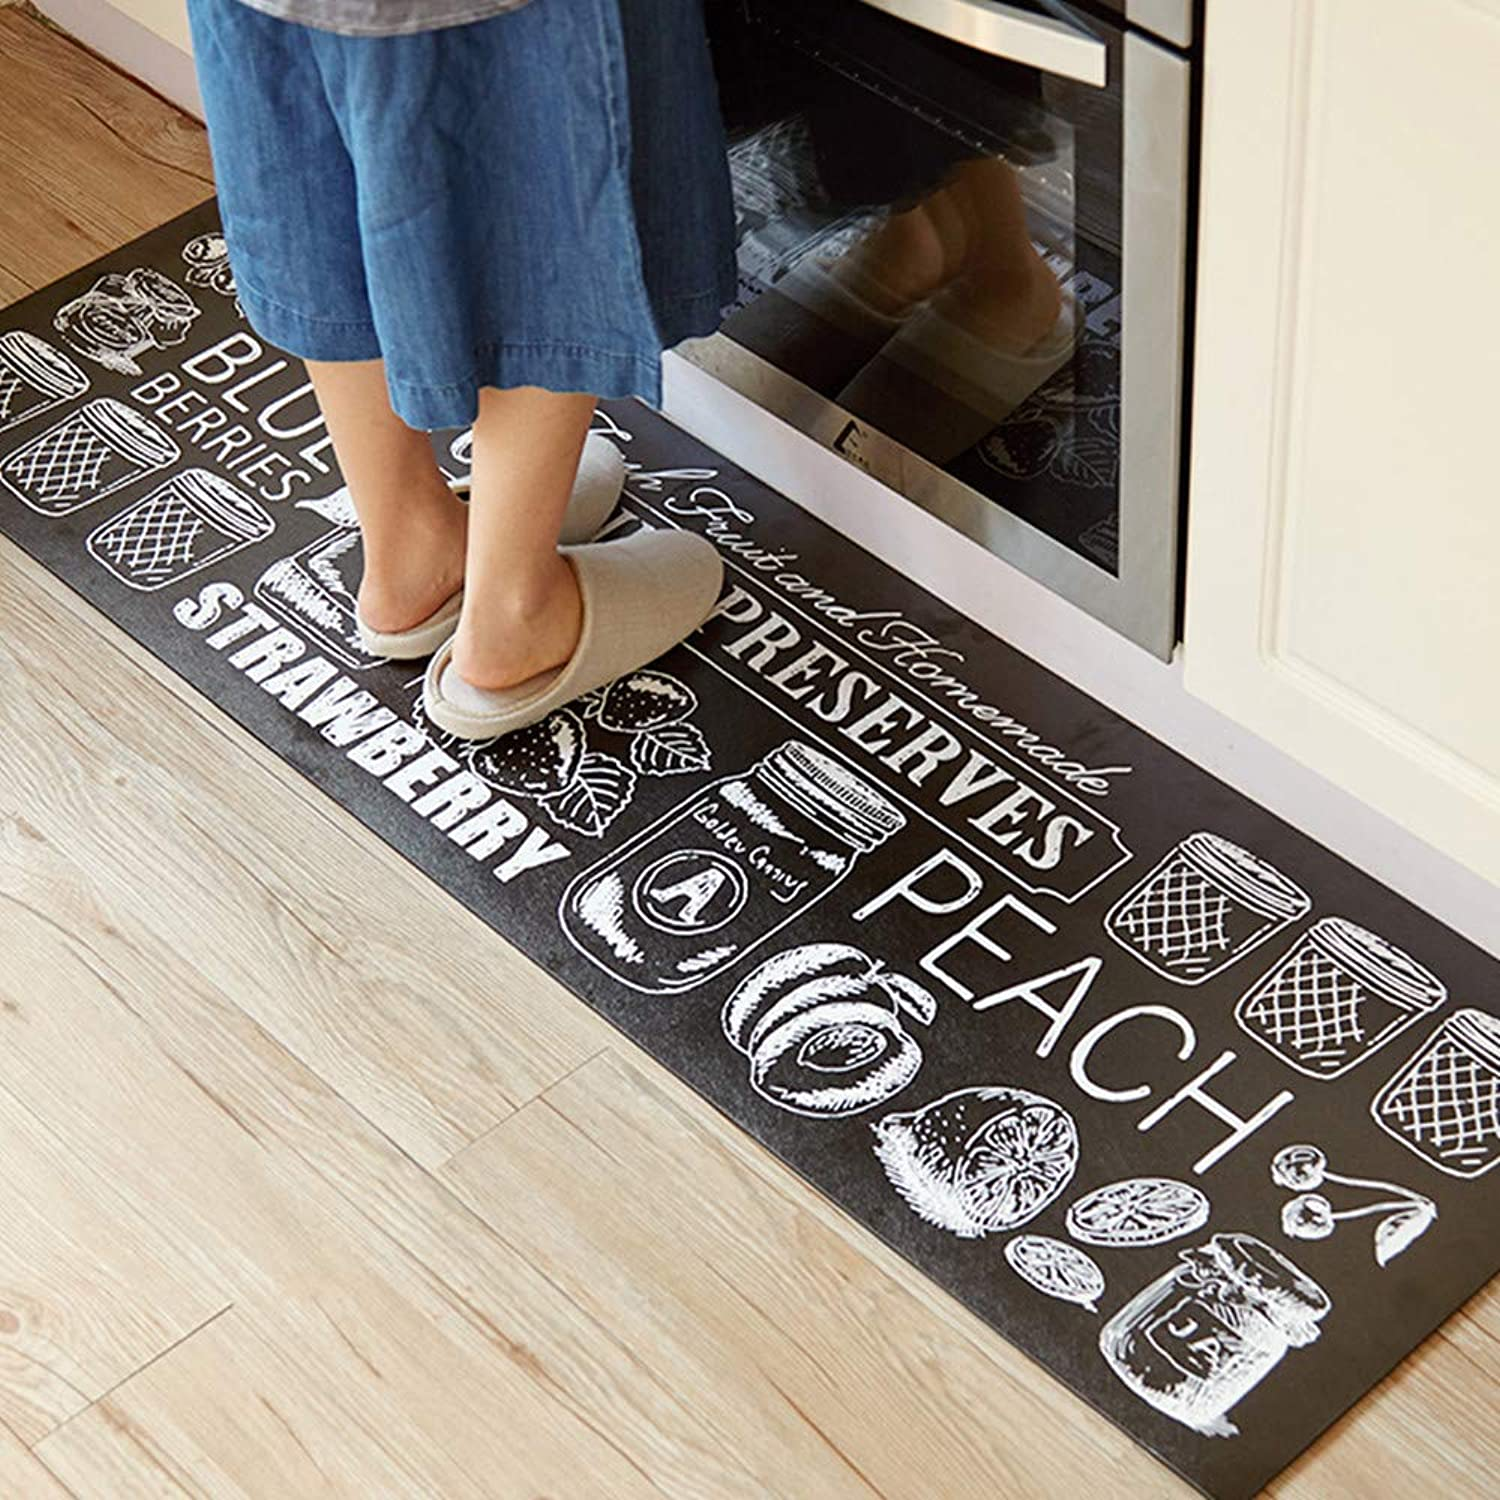 Abreeze 2Pcs Non-Skid Slip Rubber Back Kitchen Rug Sets Waterproof and Oil Proof Carpet Doormat, Canned Goods(17.7 x31.5 +17.7 x47.2 )